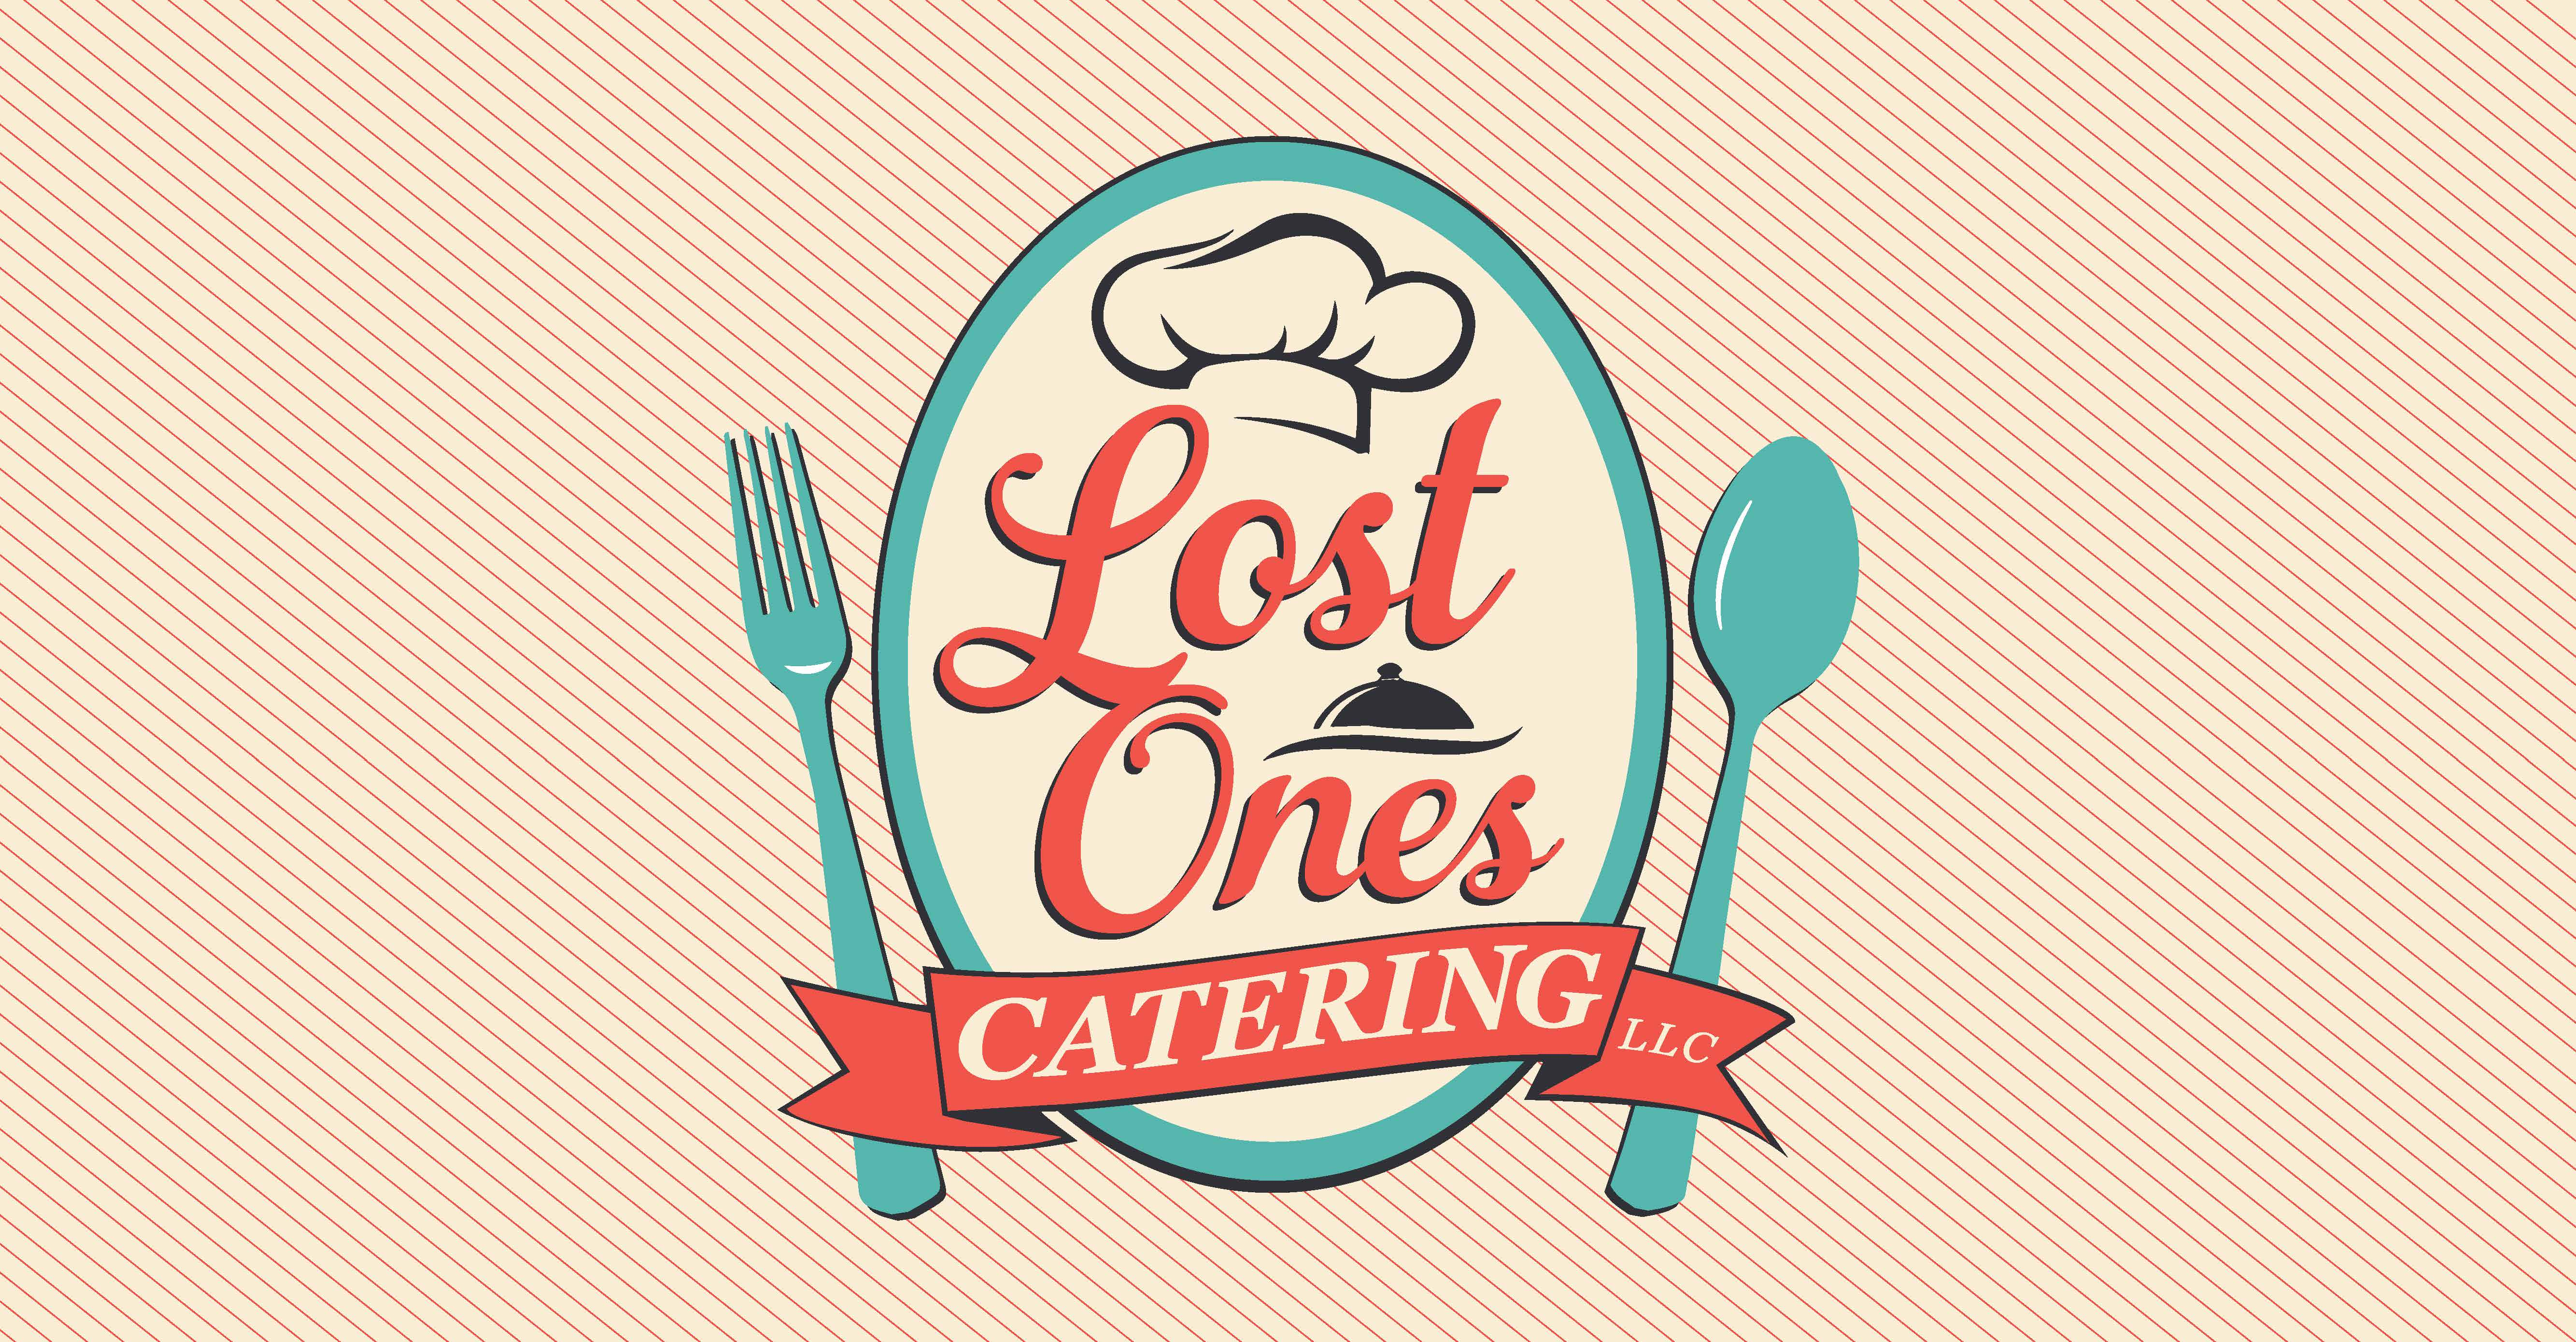 Lost Ones Catering business card